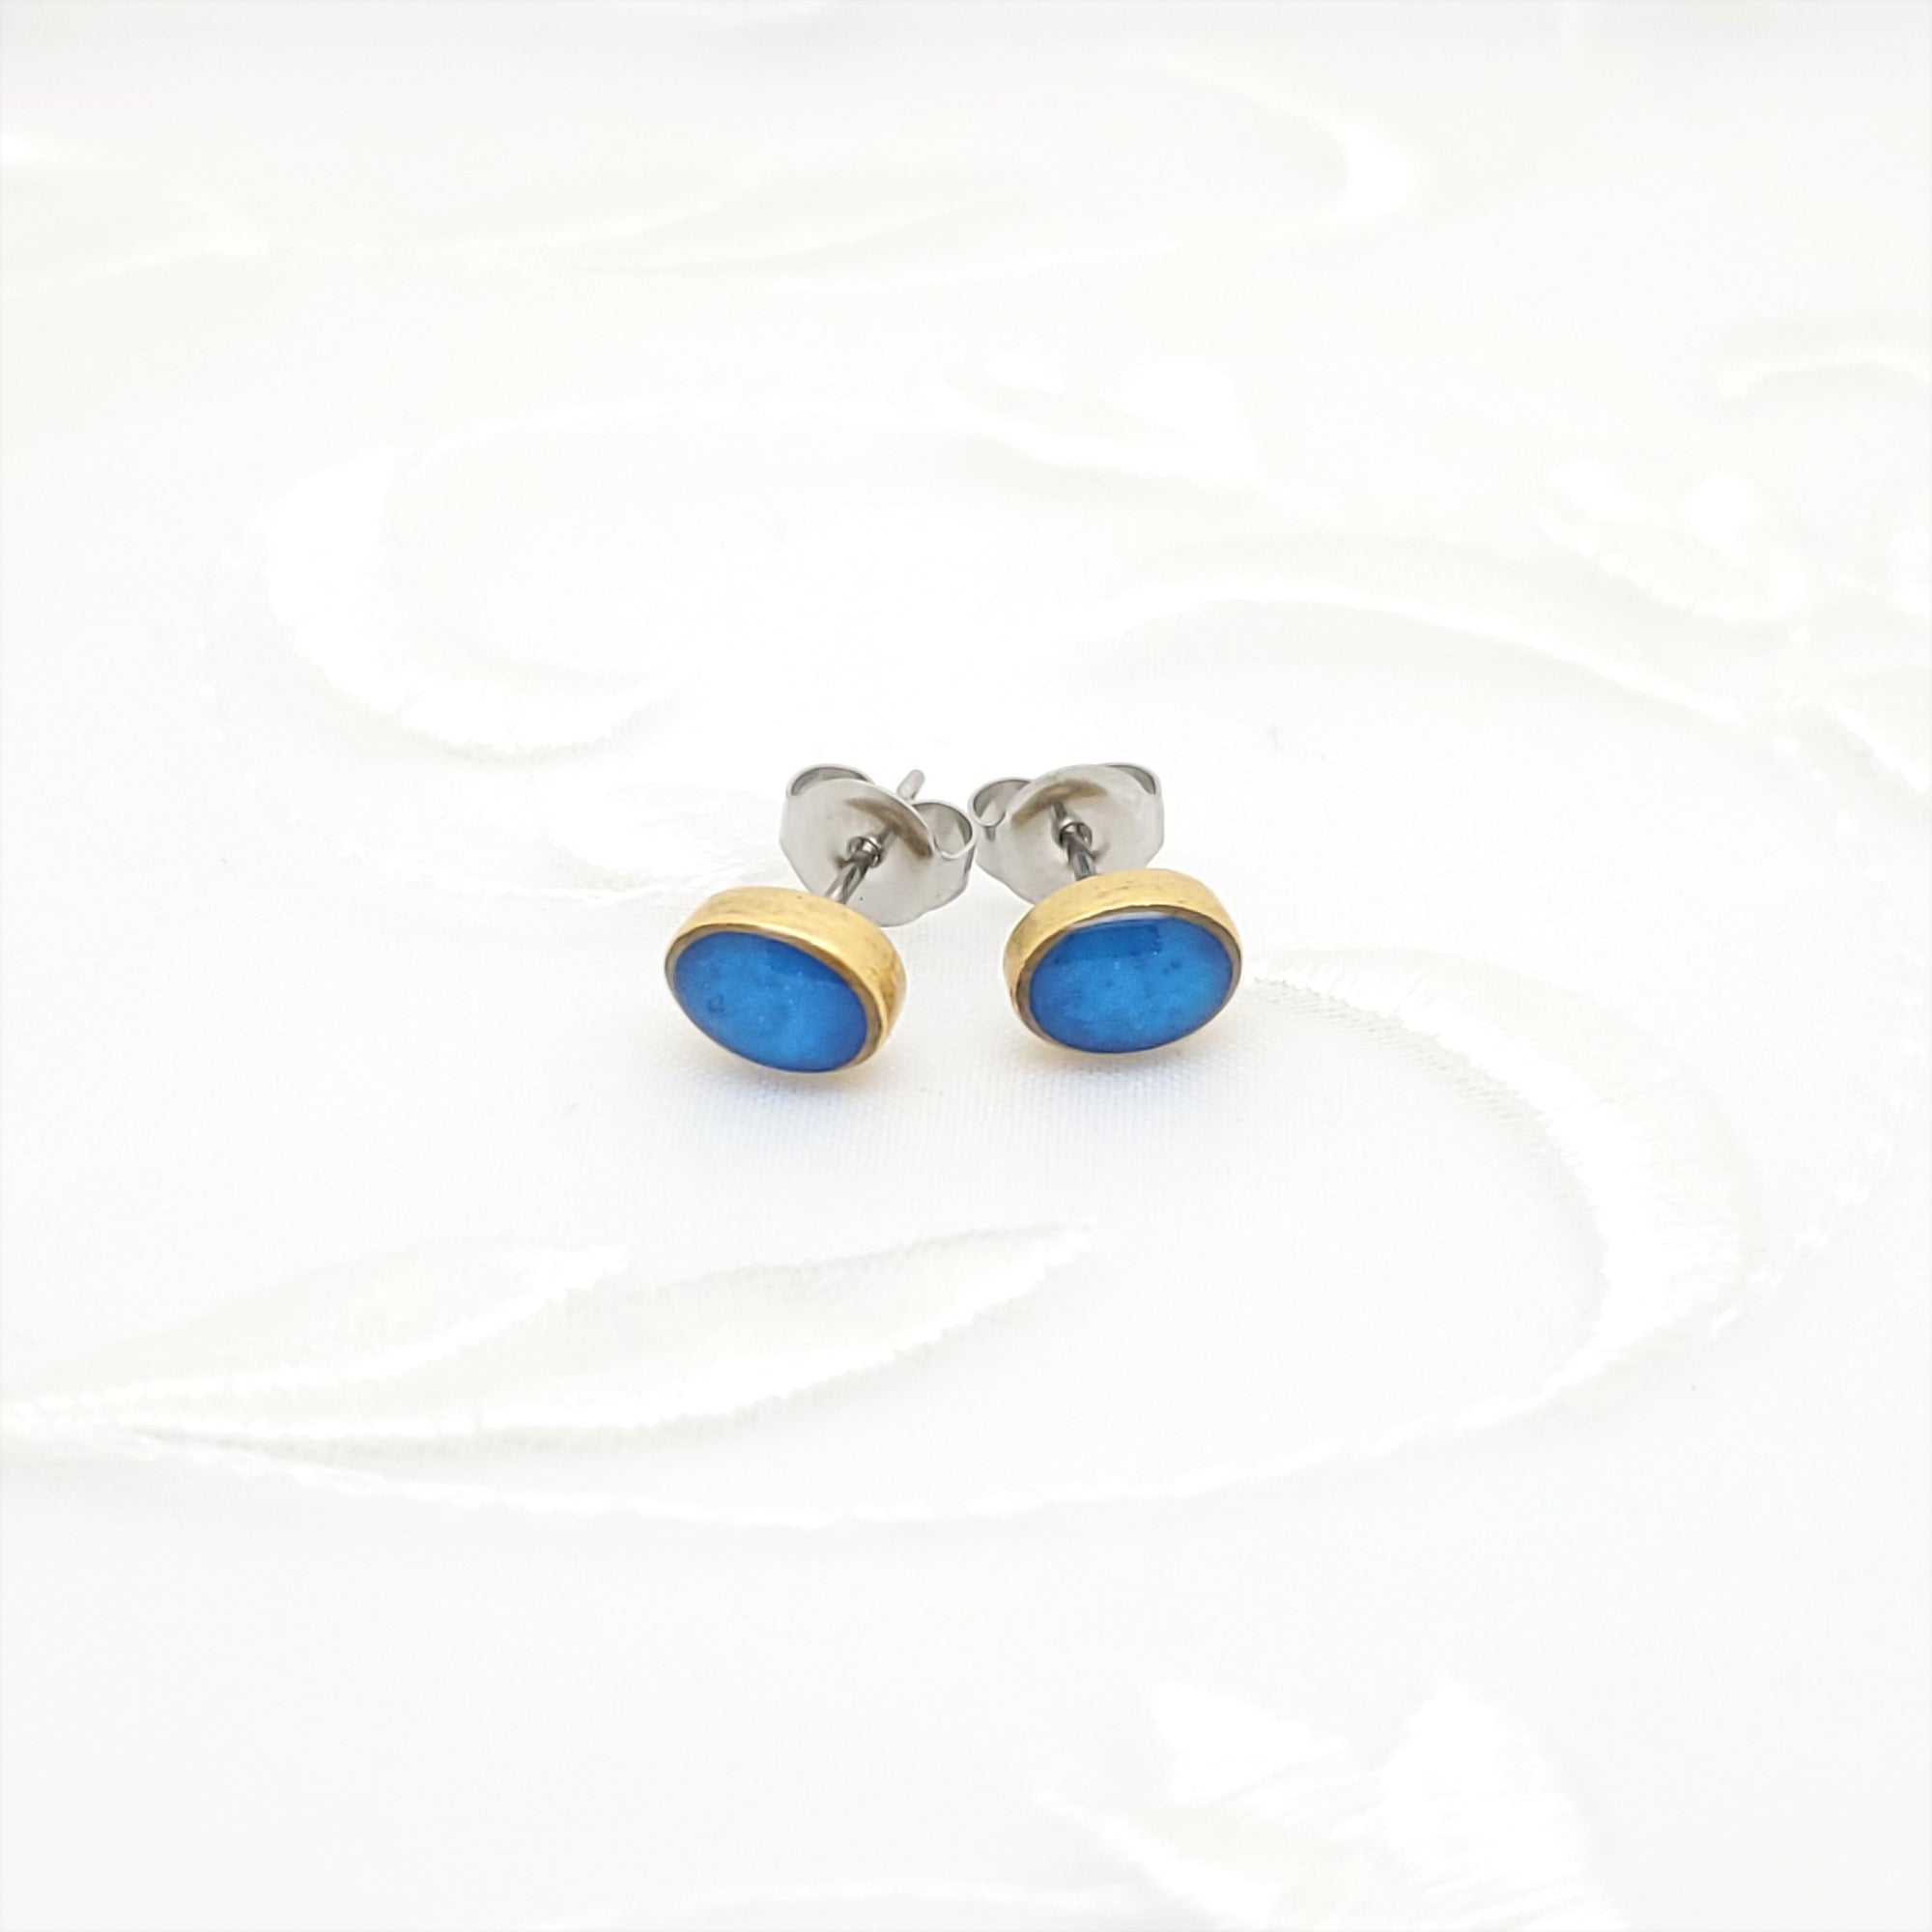 Antique Gold Oval Stud Earrings with Pearlized Cobalt Blue Resin